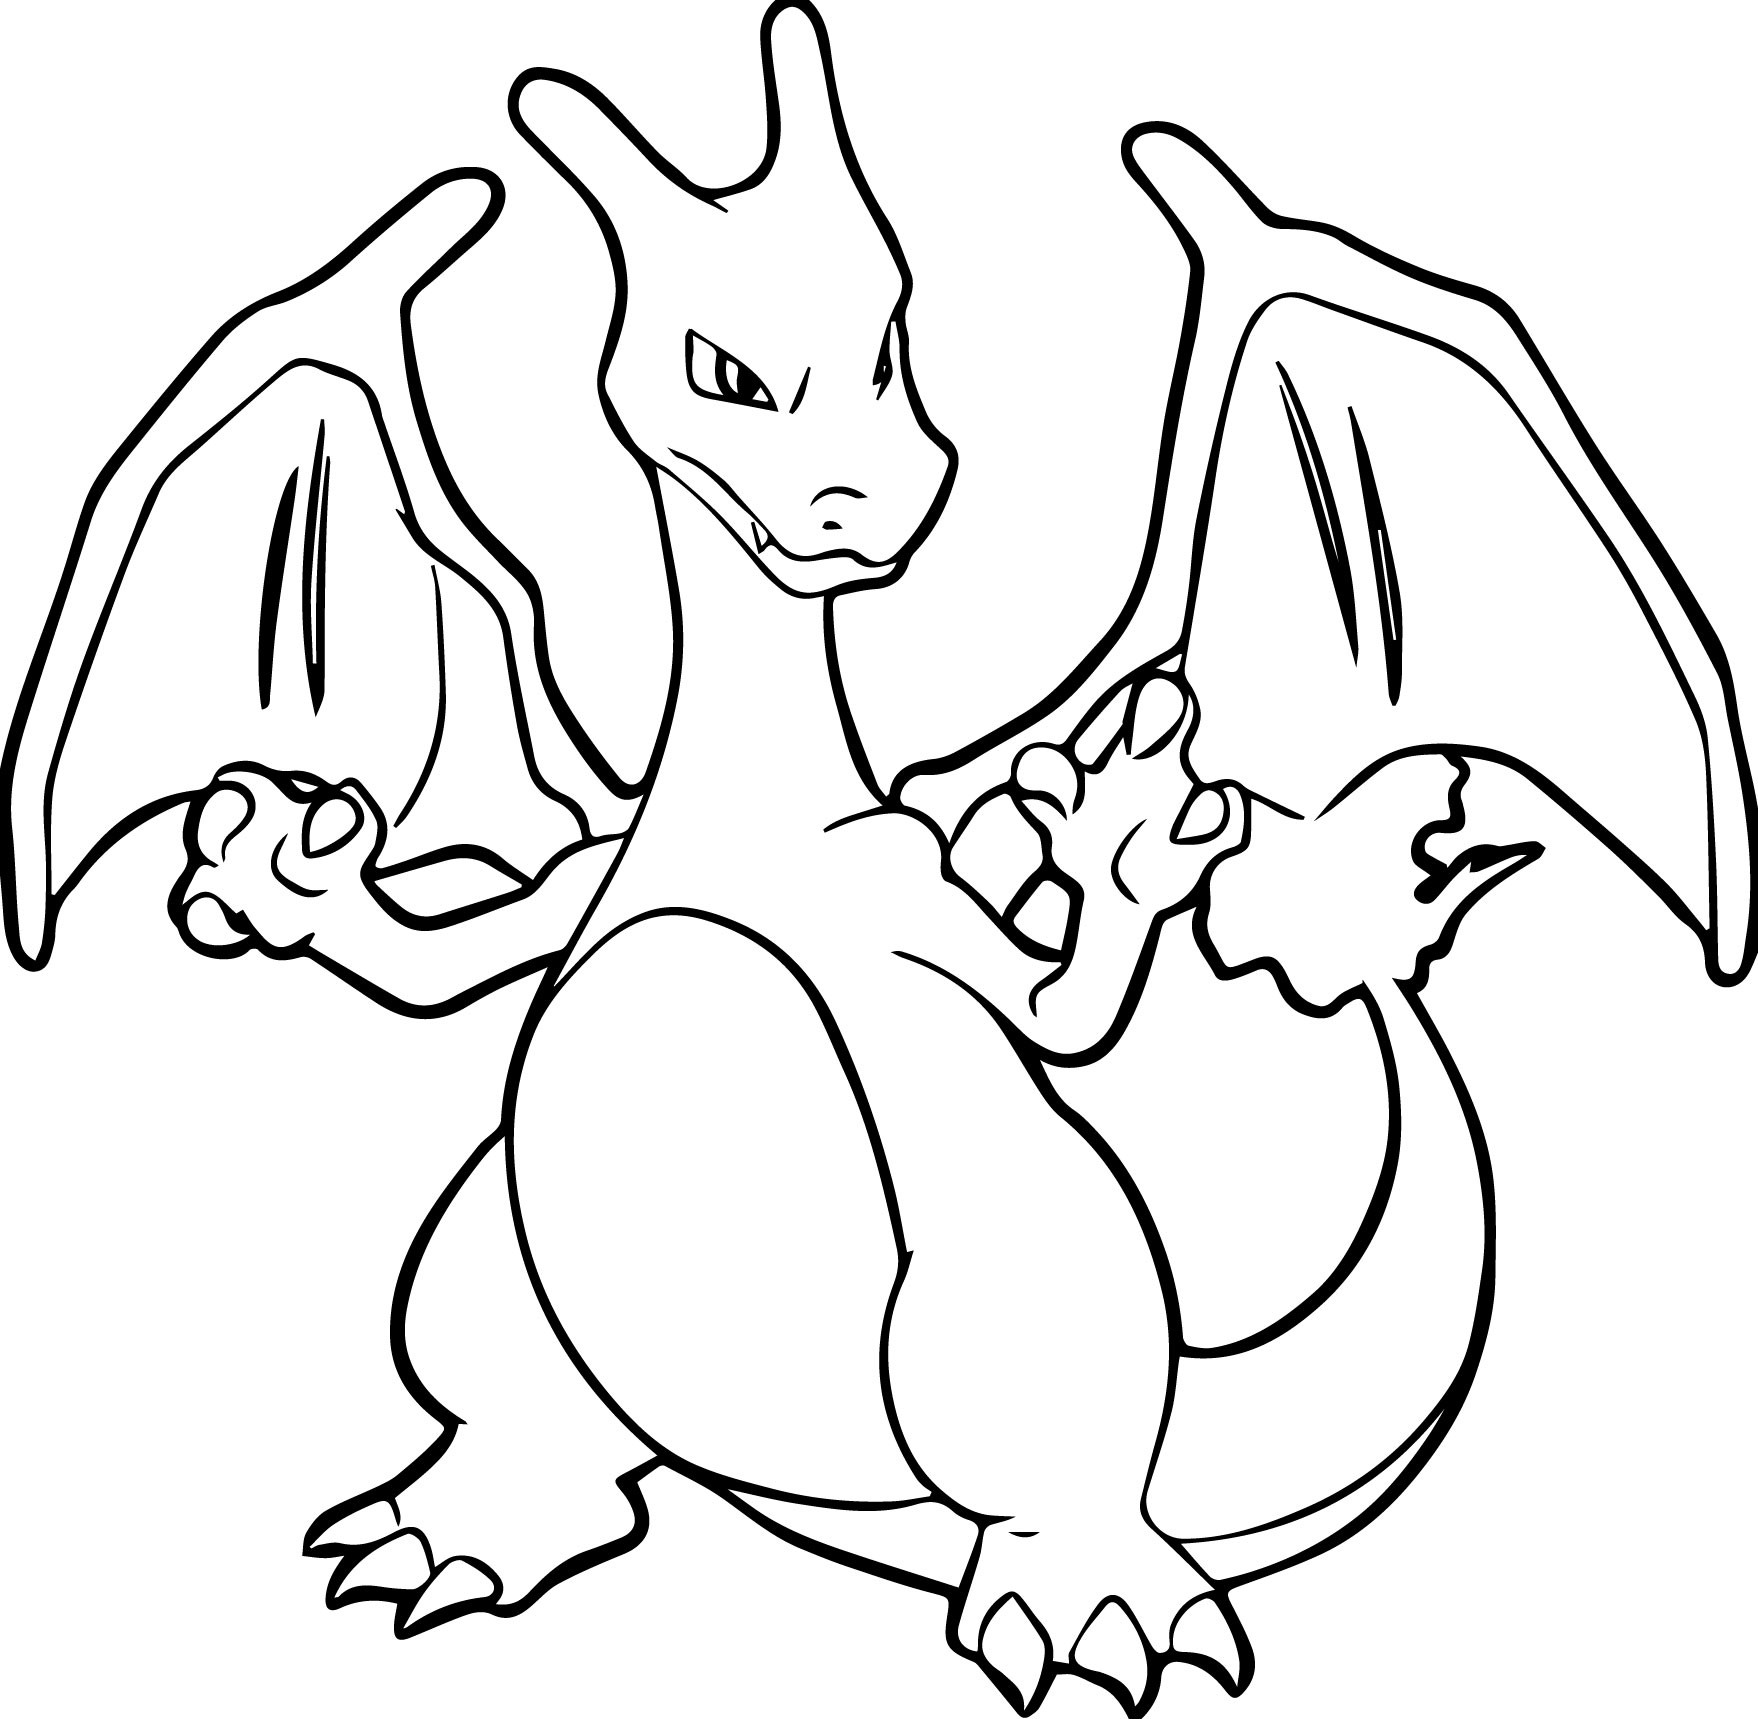 1758x1719 Etmaarrxc In Pokemon Coloring Pages Charmander Coloring Pages